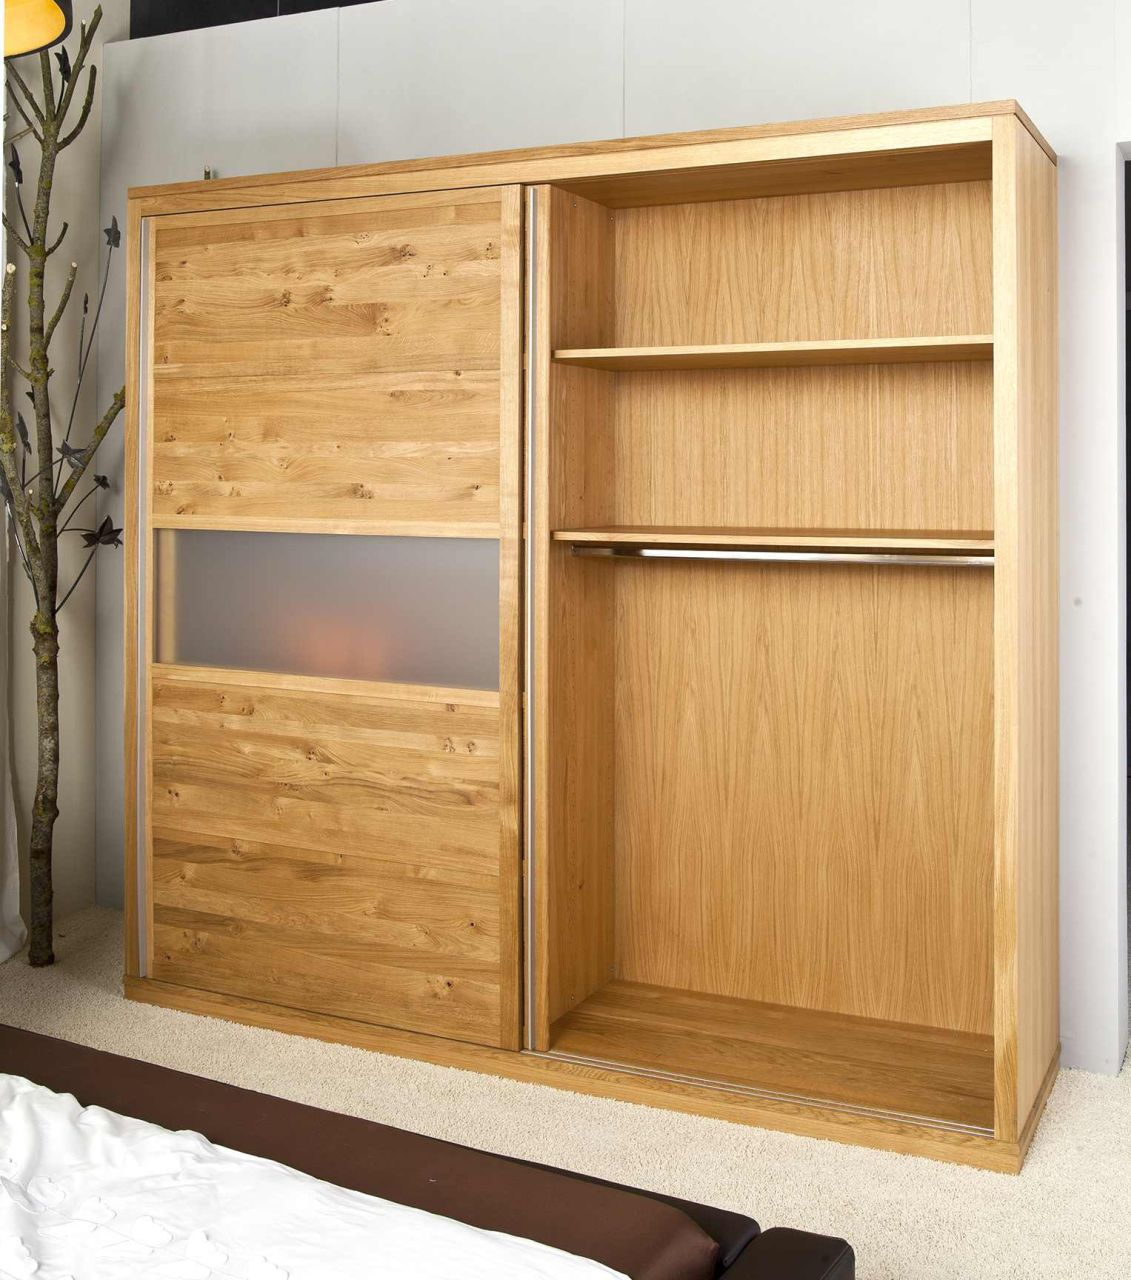 kleiderschrank kendo kohler nat rlich einrichten naturholzm bel team 7 naturm bel. Black Bedroom Furniture Sets. Home Design Ideas